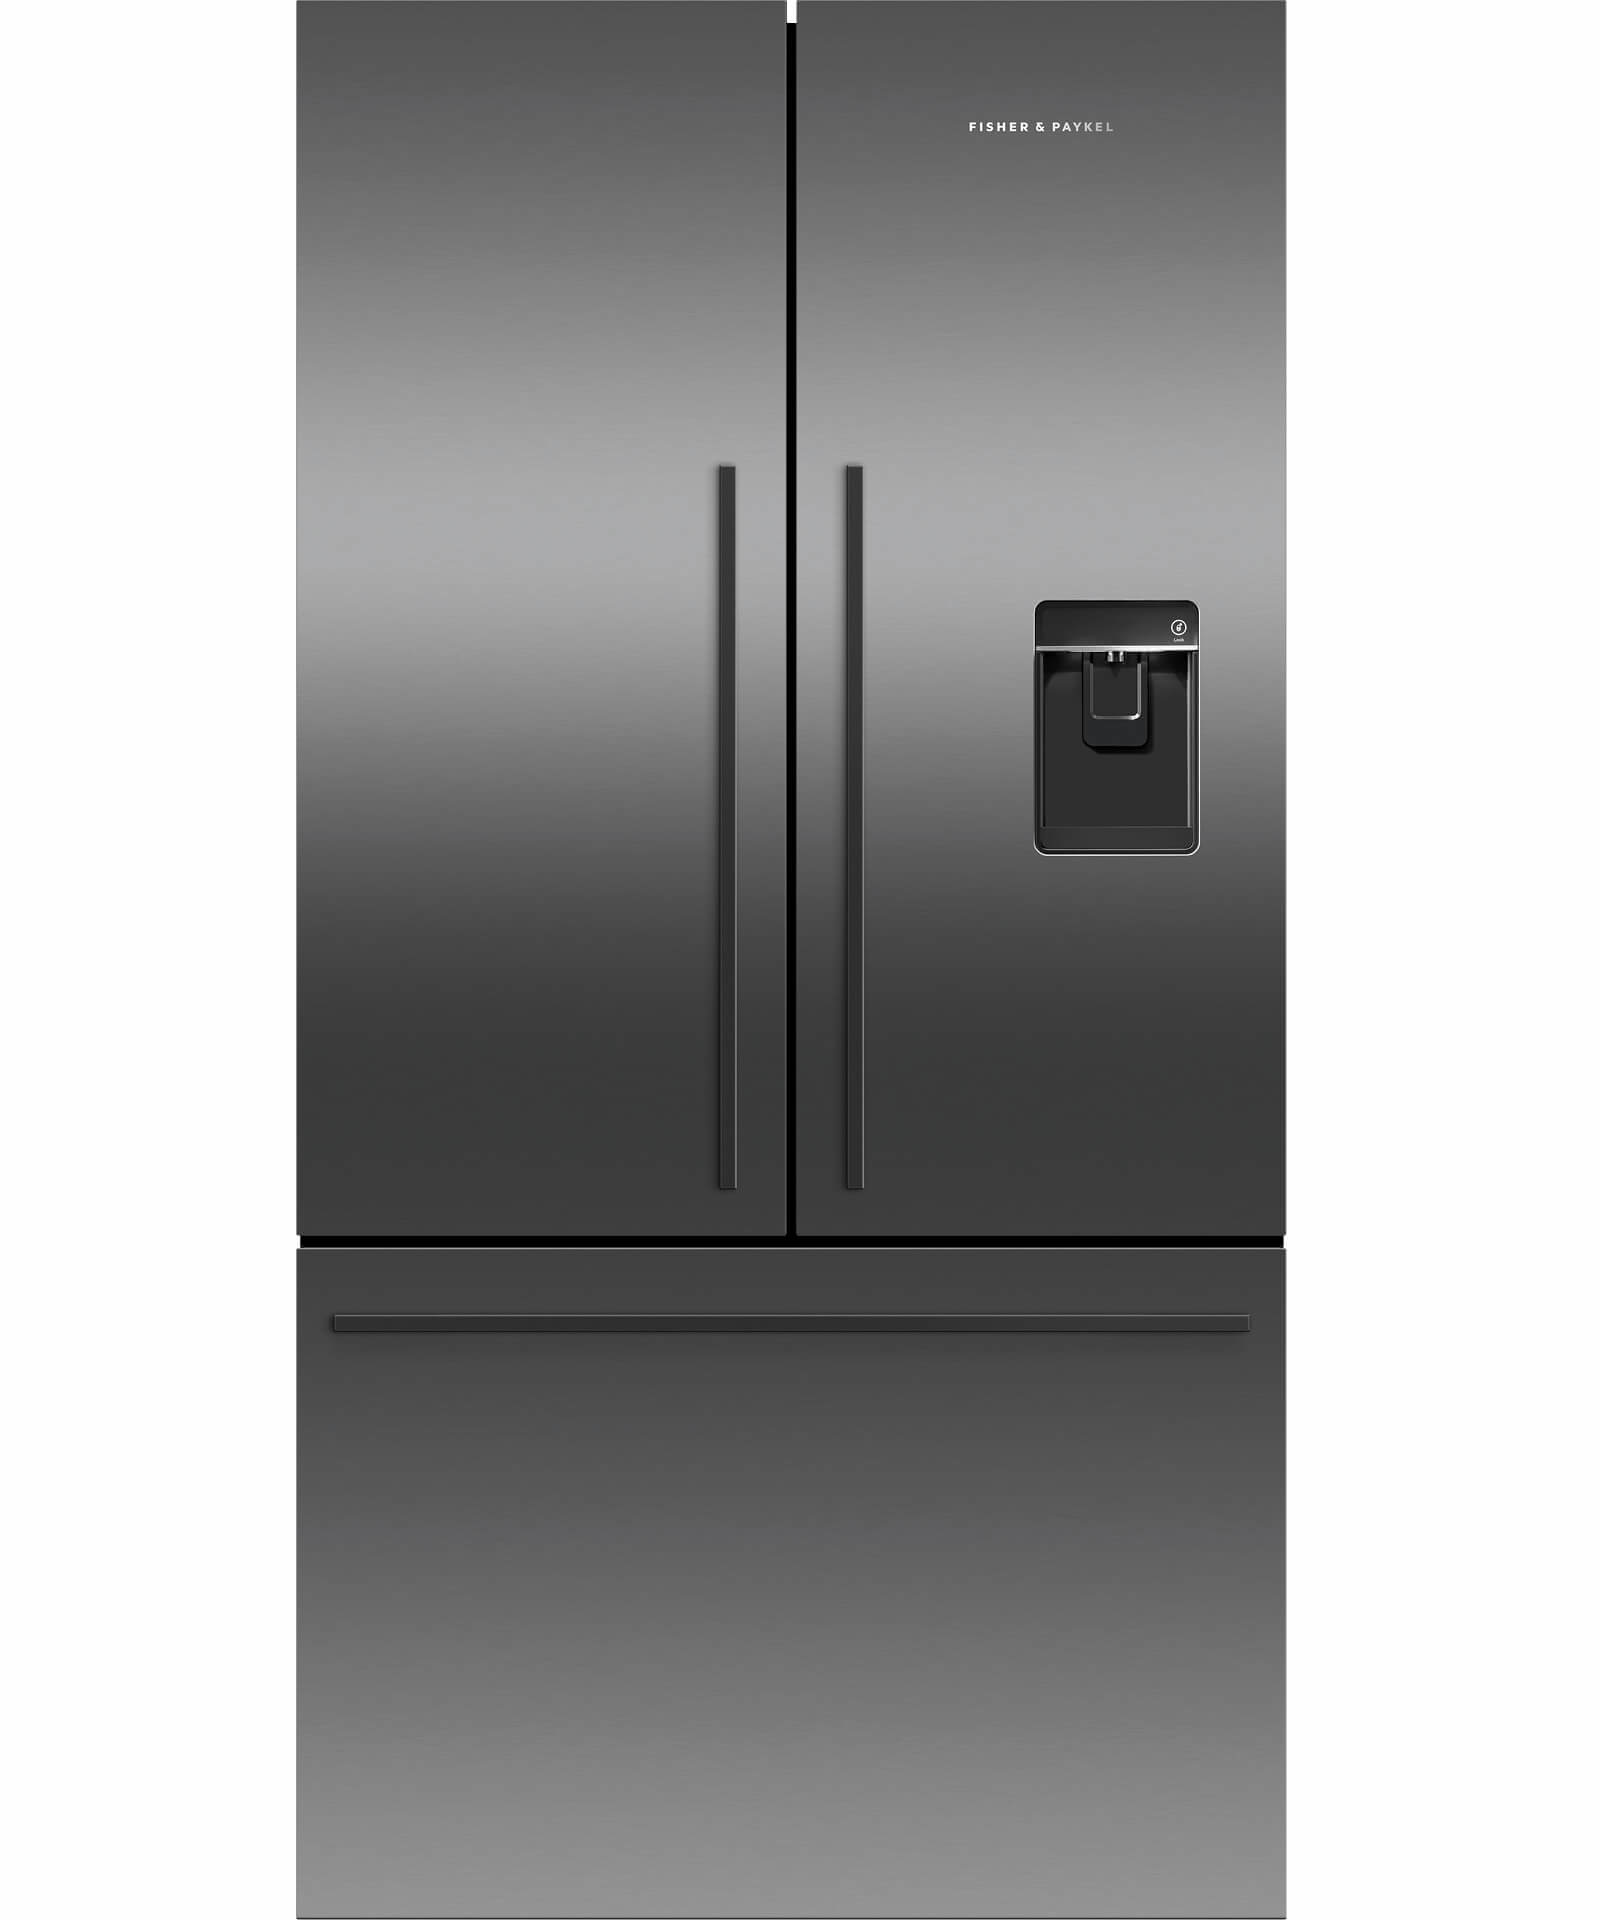 Fisher & Paykel French Door Fridge 614L Black Finish (Factory Second)